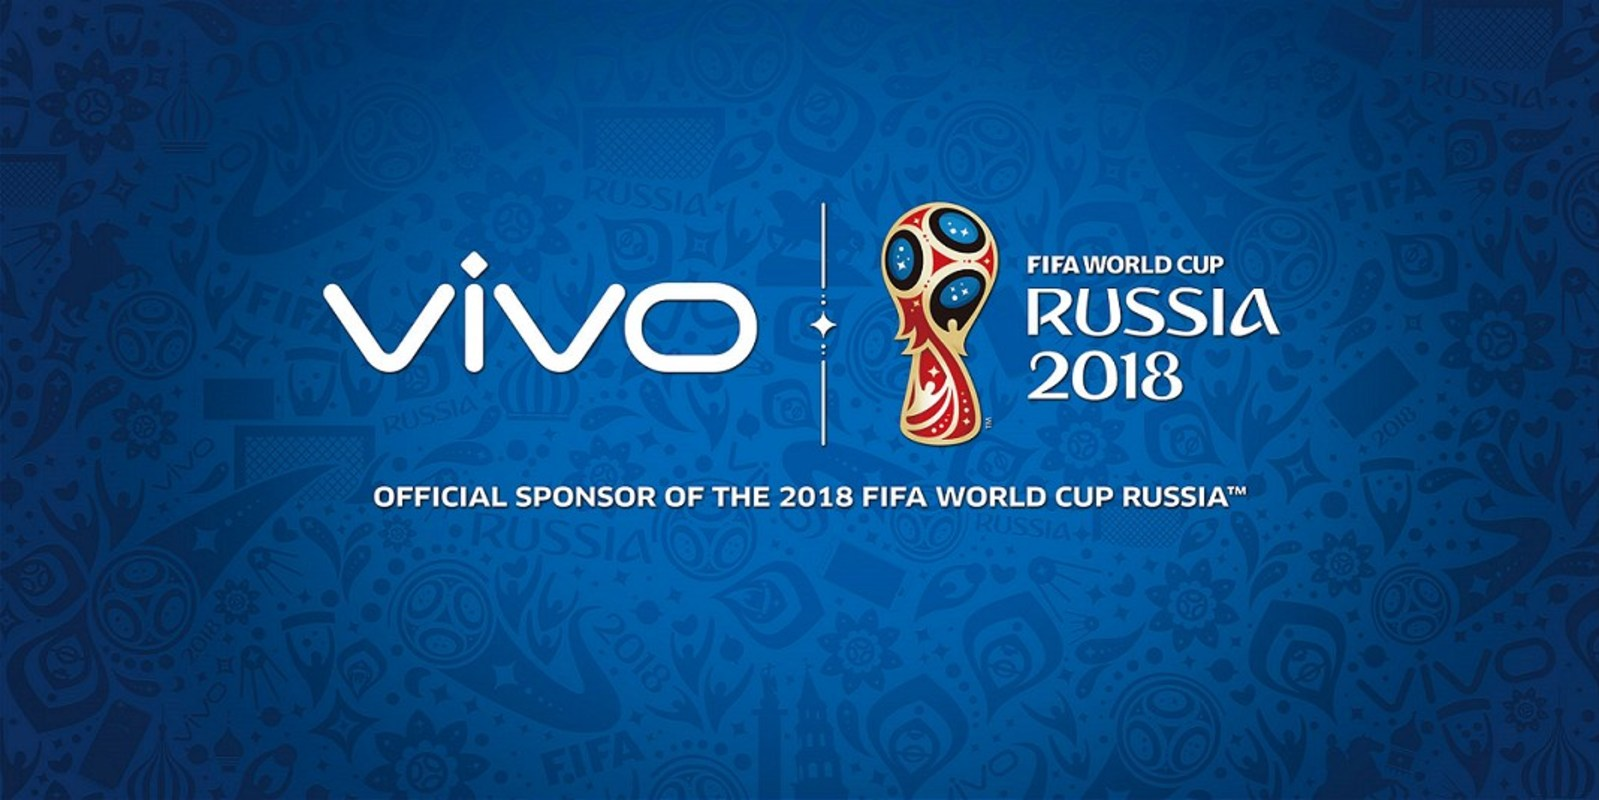 Vivo becomes the official sponsor of the 2018 and 2022 FIFA World Cups (PRNewsfoto/Vivo)